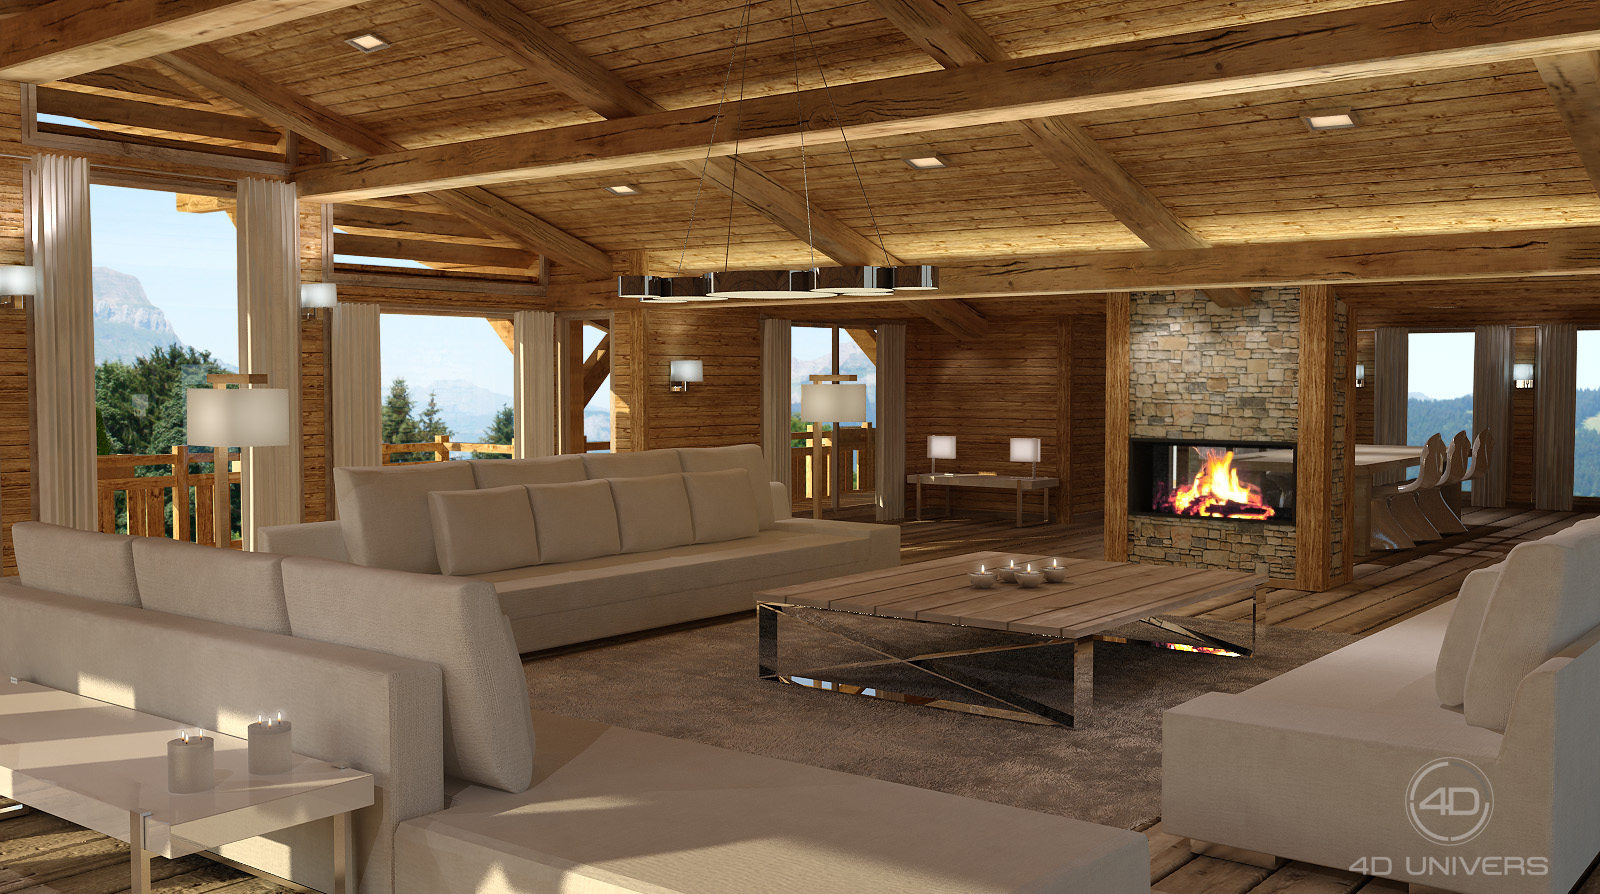 Chalet meg ve 4d univers studio animation 3d for Decoration interieur style chalet